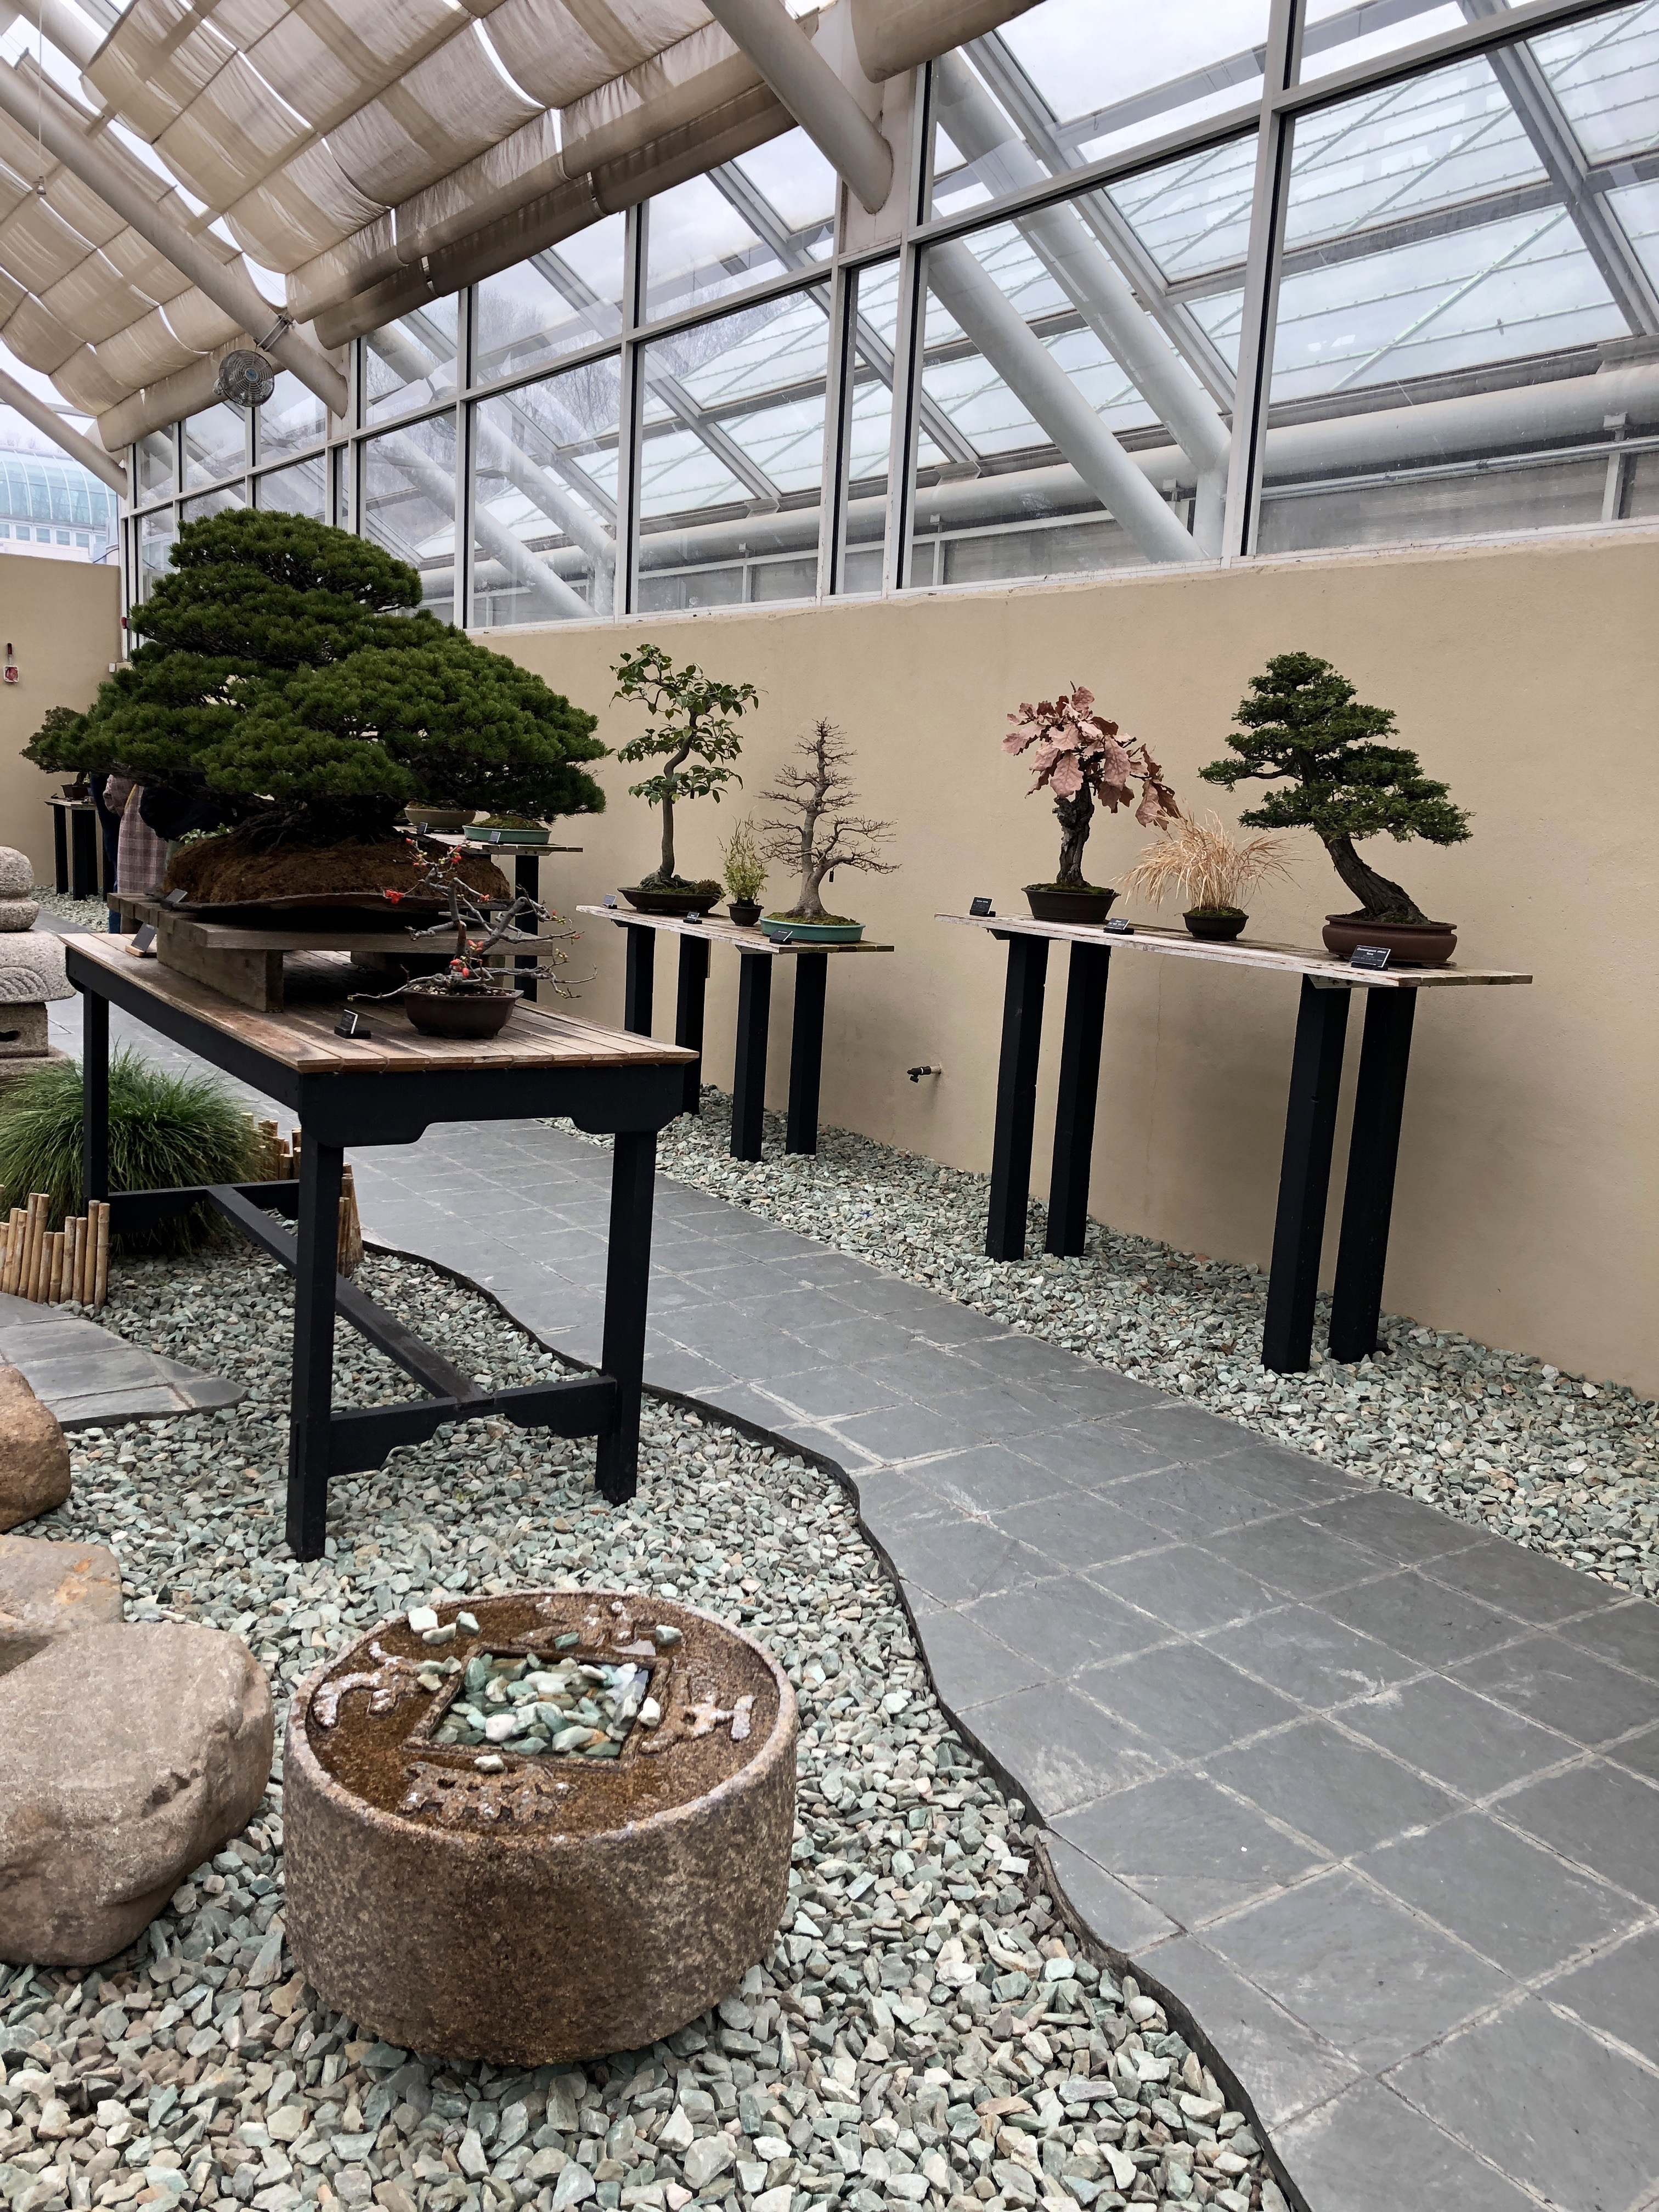 the Brooklyn Botanical Garden in New York has a whole area dedicated to growing bonsai trees and showing them off to the public.